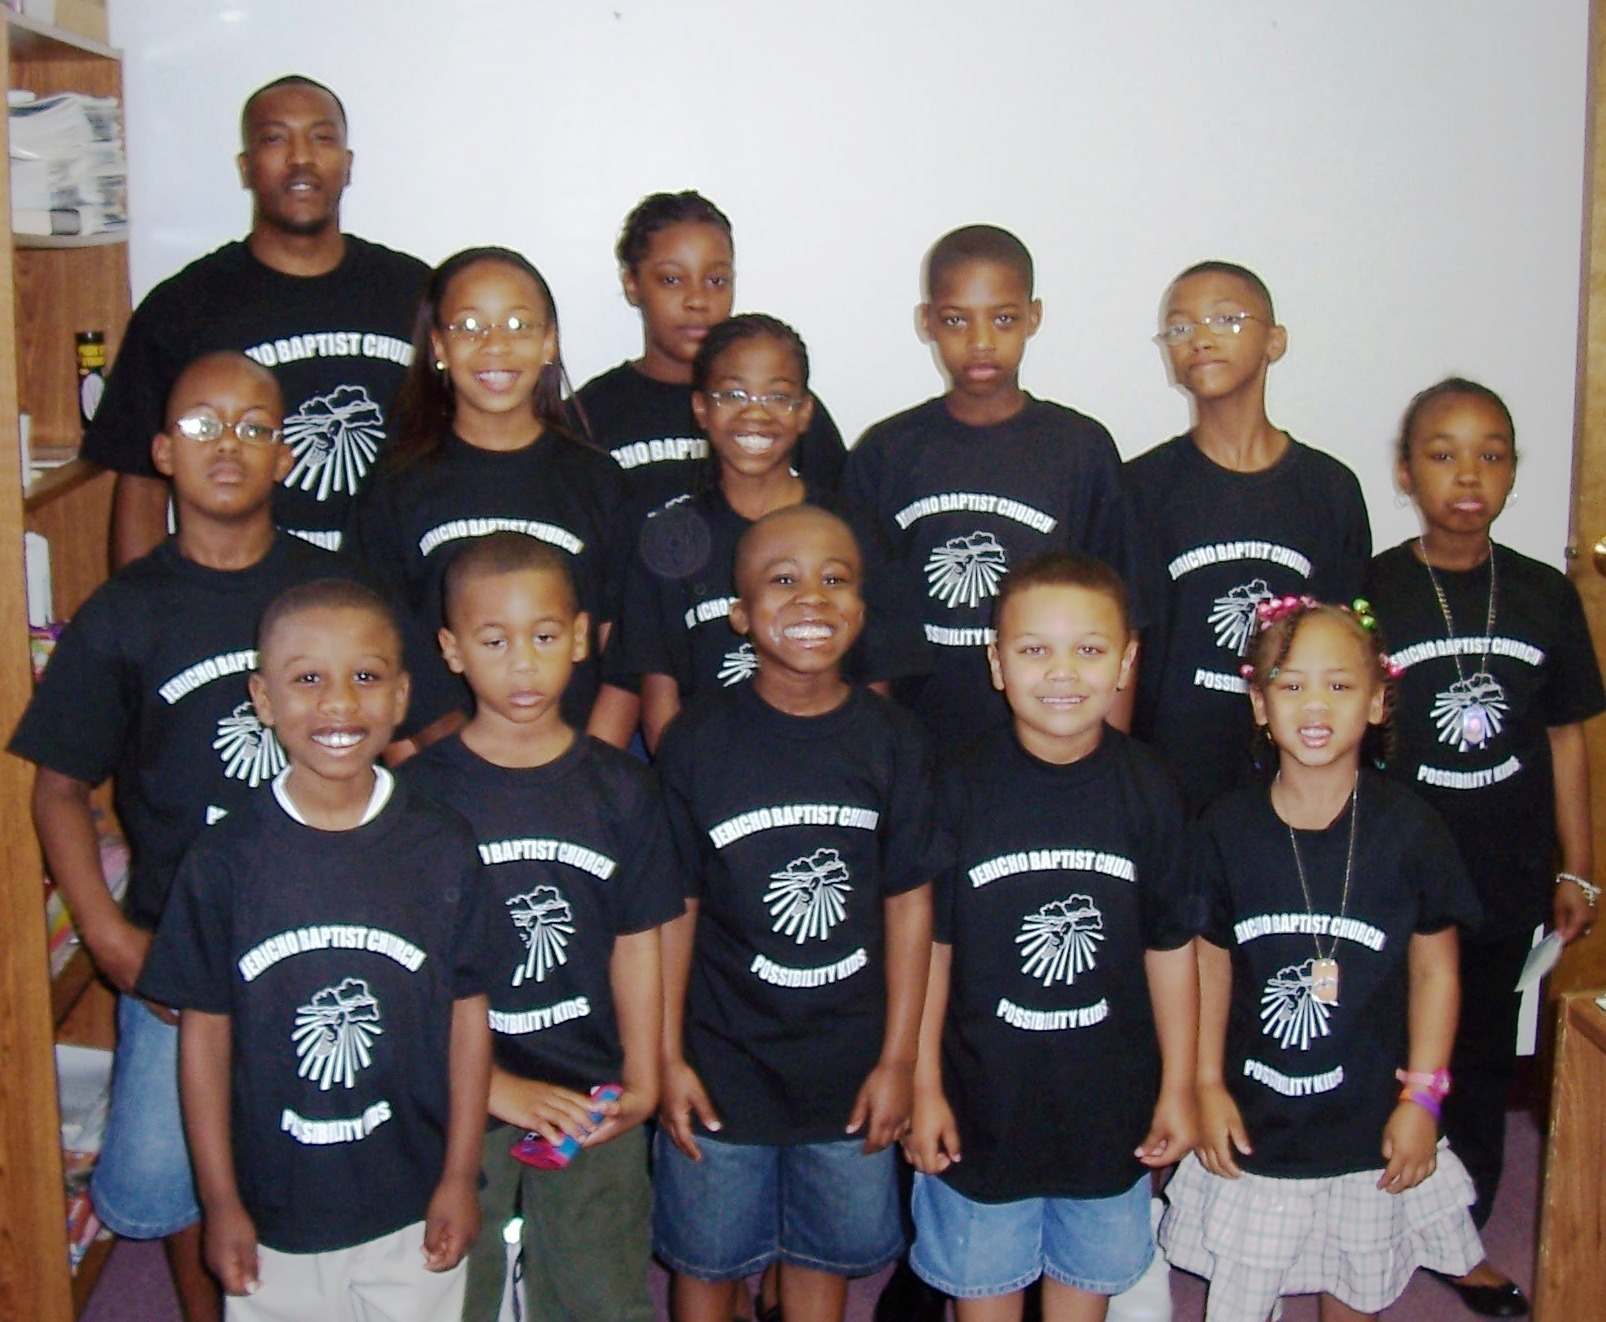 jericho baptist church childrens choir t shirt photo